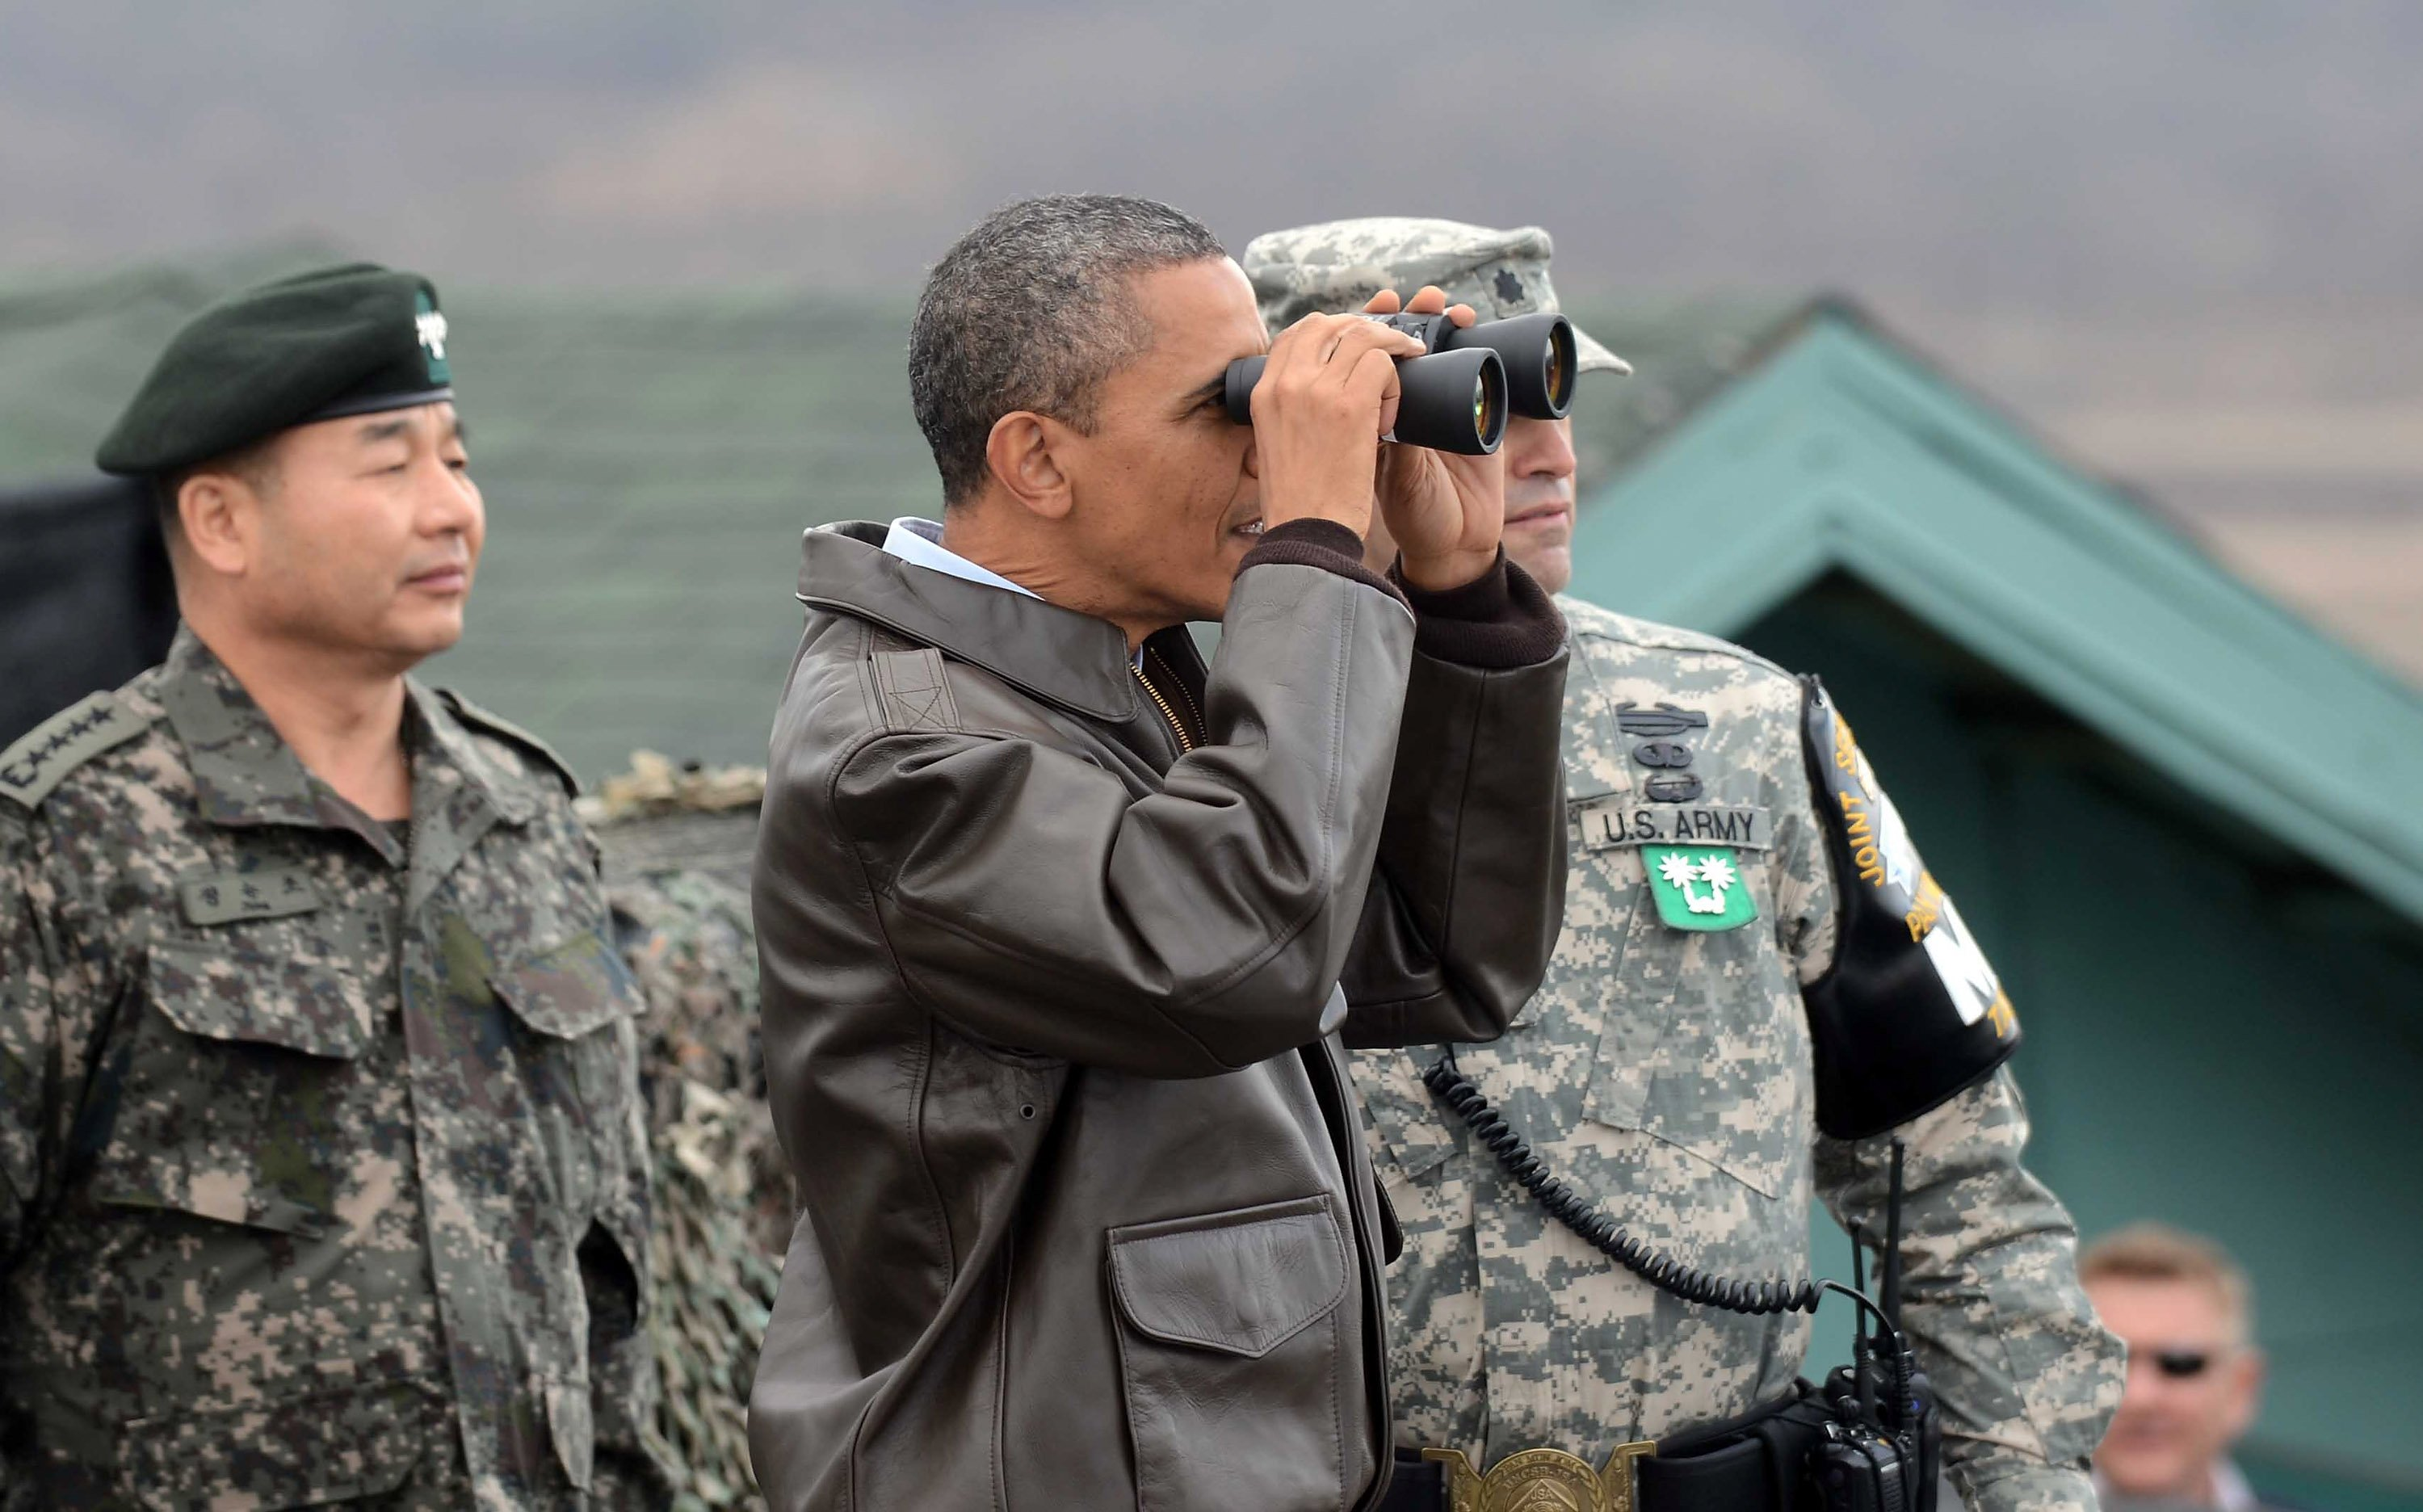 PANMUNJOM, SOUTH KOREA - MARCH 25: U.S. President Barack Obama uses binoculars to look at North Korea from the Observation Post Ouellette in the Demilitarized Zone which separates the two Koreas in the inter-Korean truce village of Panmunjom on March 25, 2012 in Panmunjom, South Korea. World leaders gather at Seoul to discuss on the issues to prevent possible nuclear terrorism and recurrence of meltdown of nuclear power plants and to minimize nuclear material across the world. (Photo by Yonhap News via /Getty Images)